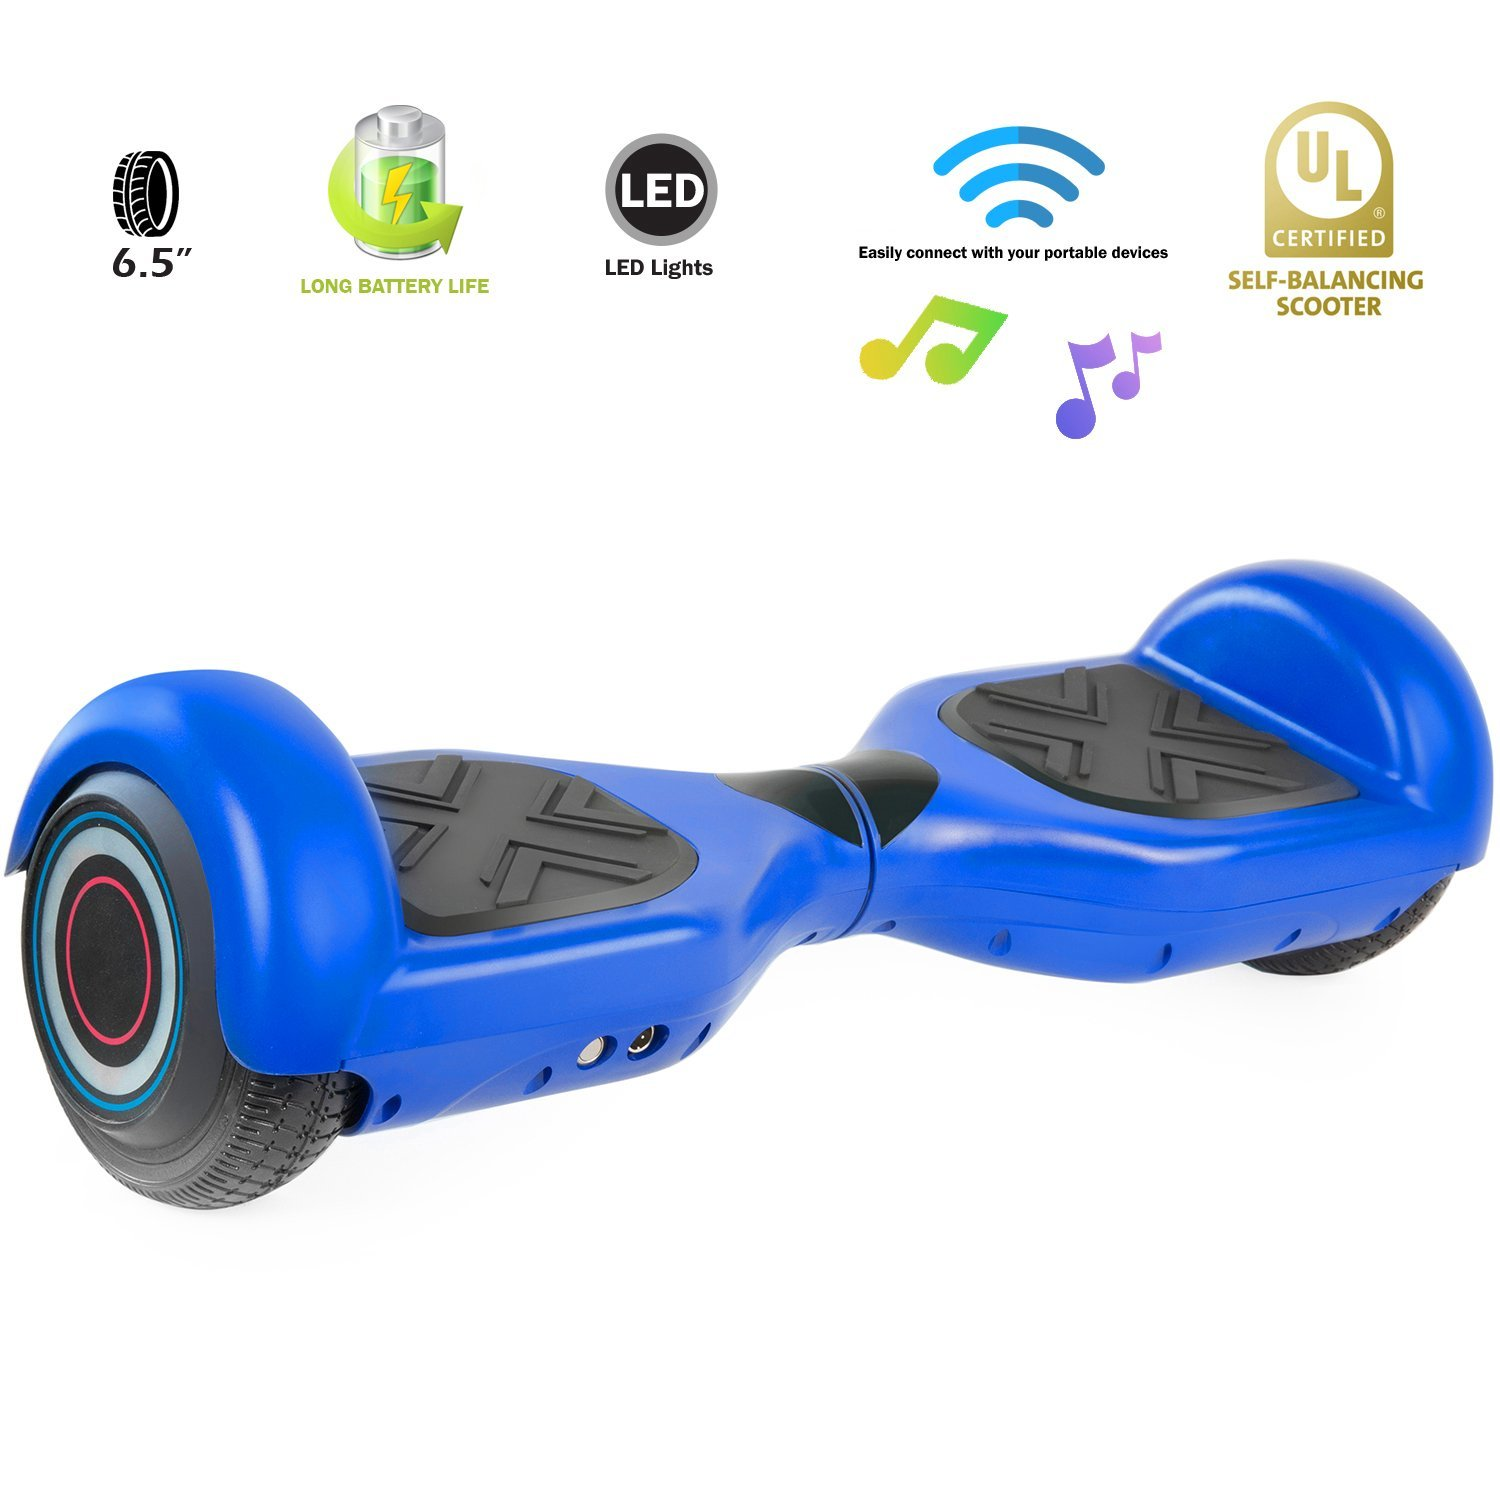 XPRIT Easter Sale Hoverboard w/Bluetooth Speaker (Blue) by XPRIT (Image #6)